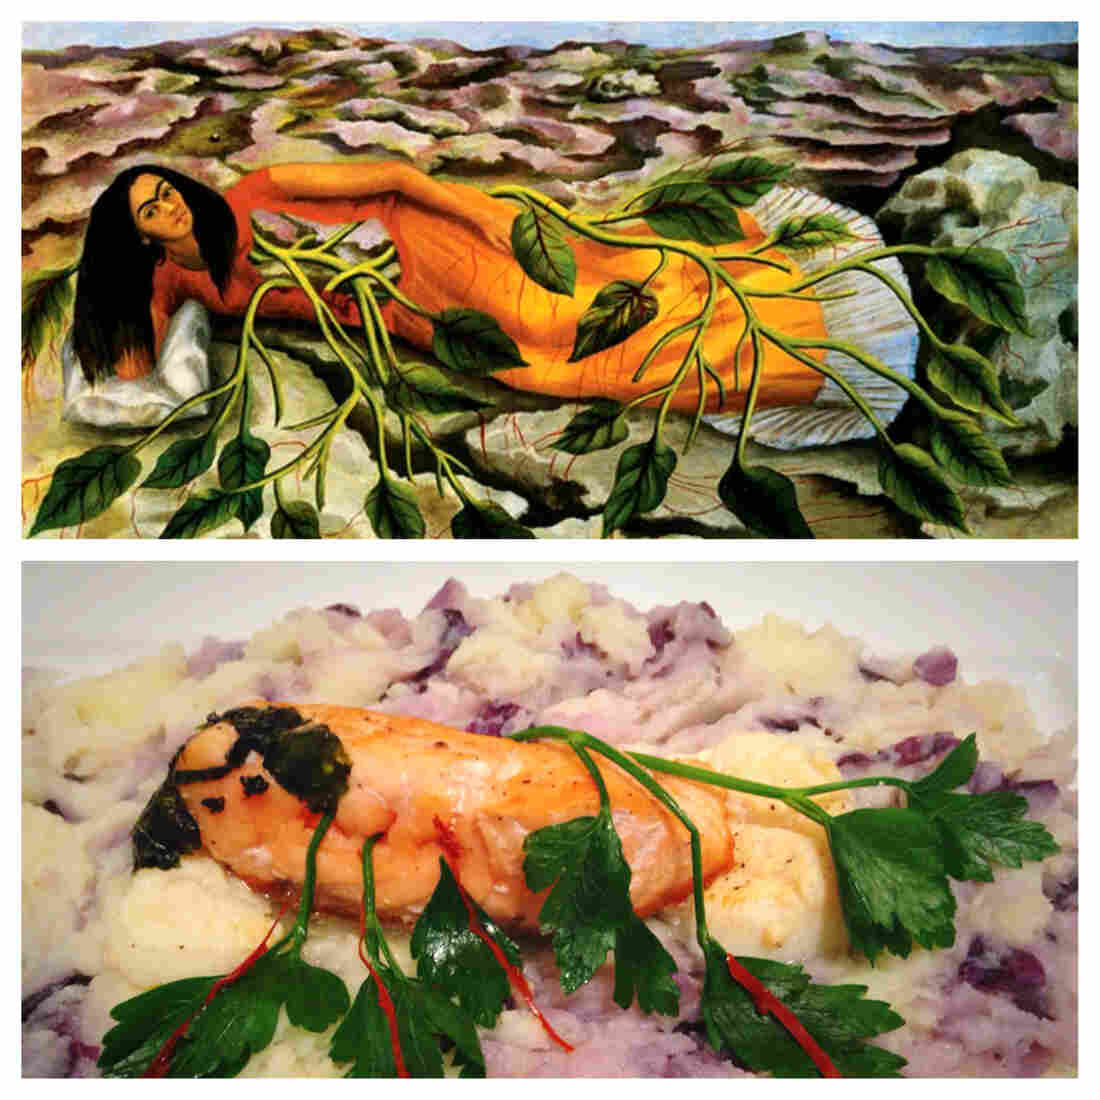 Frido Kahlo self-portrait Roots and Just Eat Life's rendition of the painting submitted through Twitter.